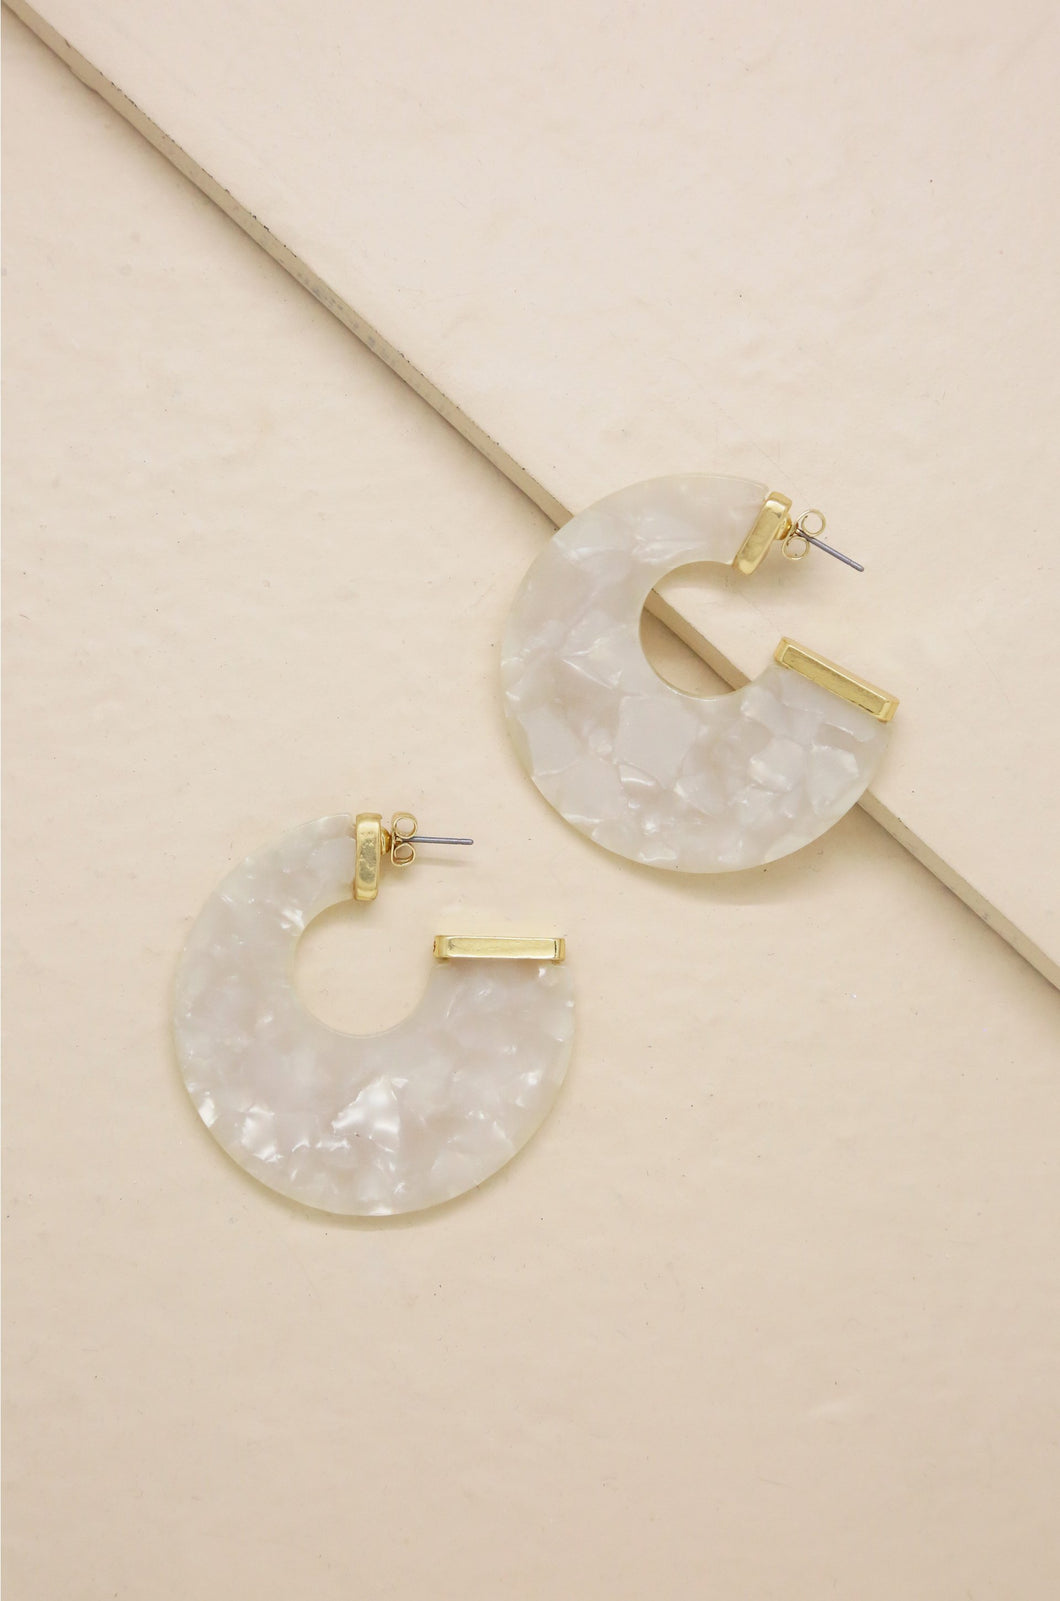 [Free Shipping] 18k Gold Rosarito Earrings